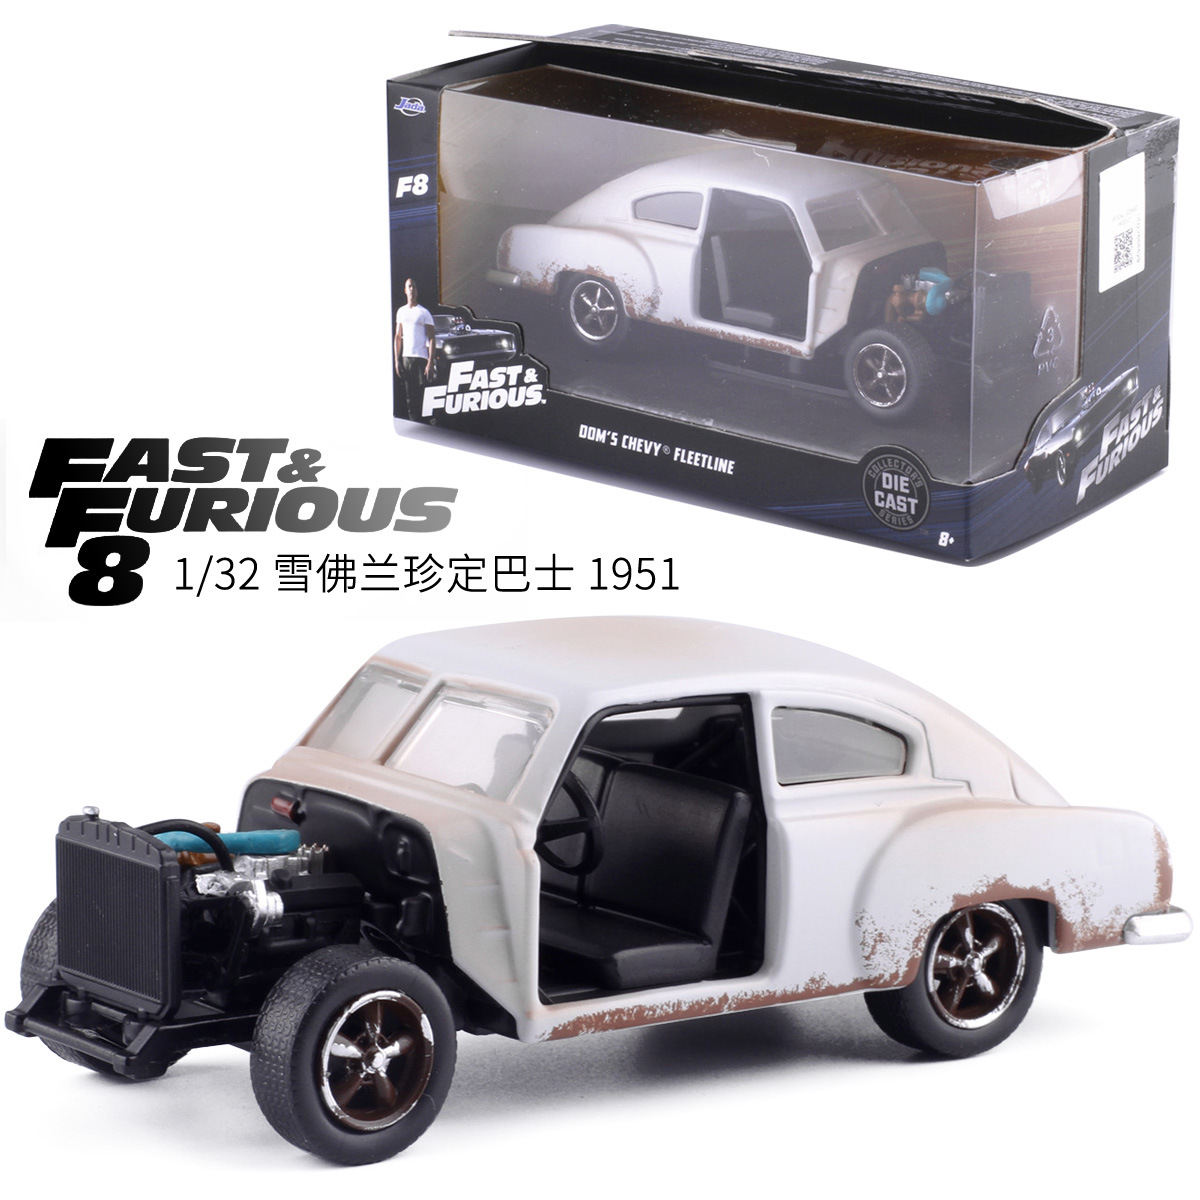 small resolution of 1 32 jada fast furious alloy car chevy fleetline 1951 bus metal diecasts classical model toy collection toys for children gift in diecasts toy vehicles